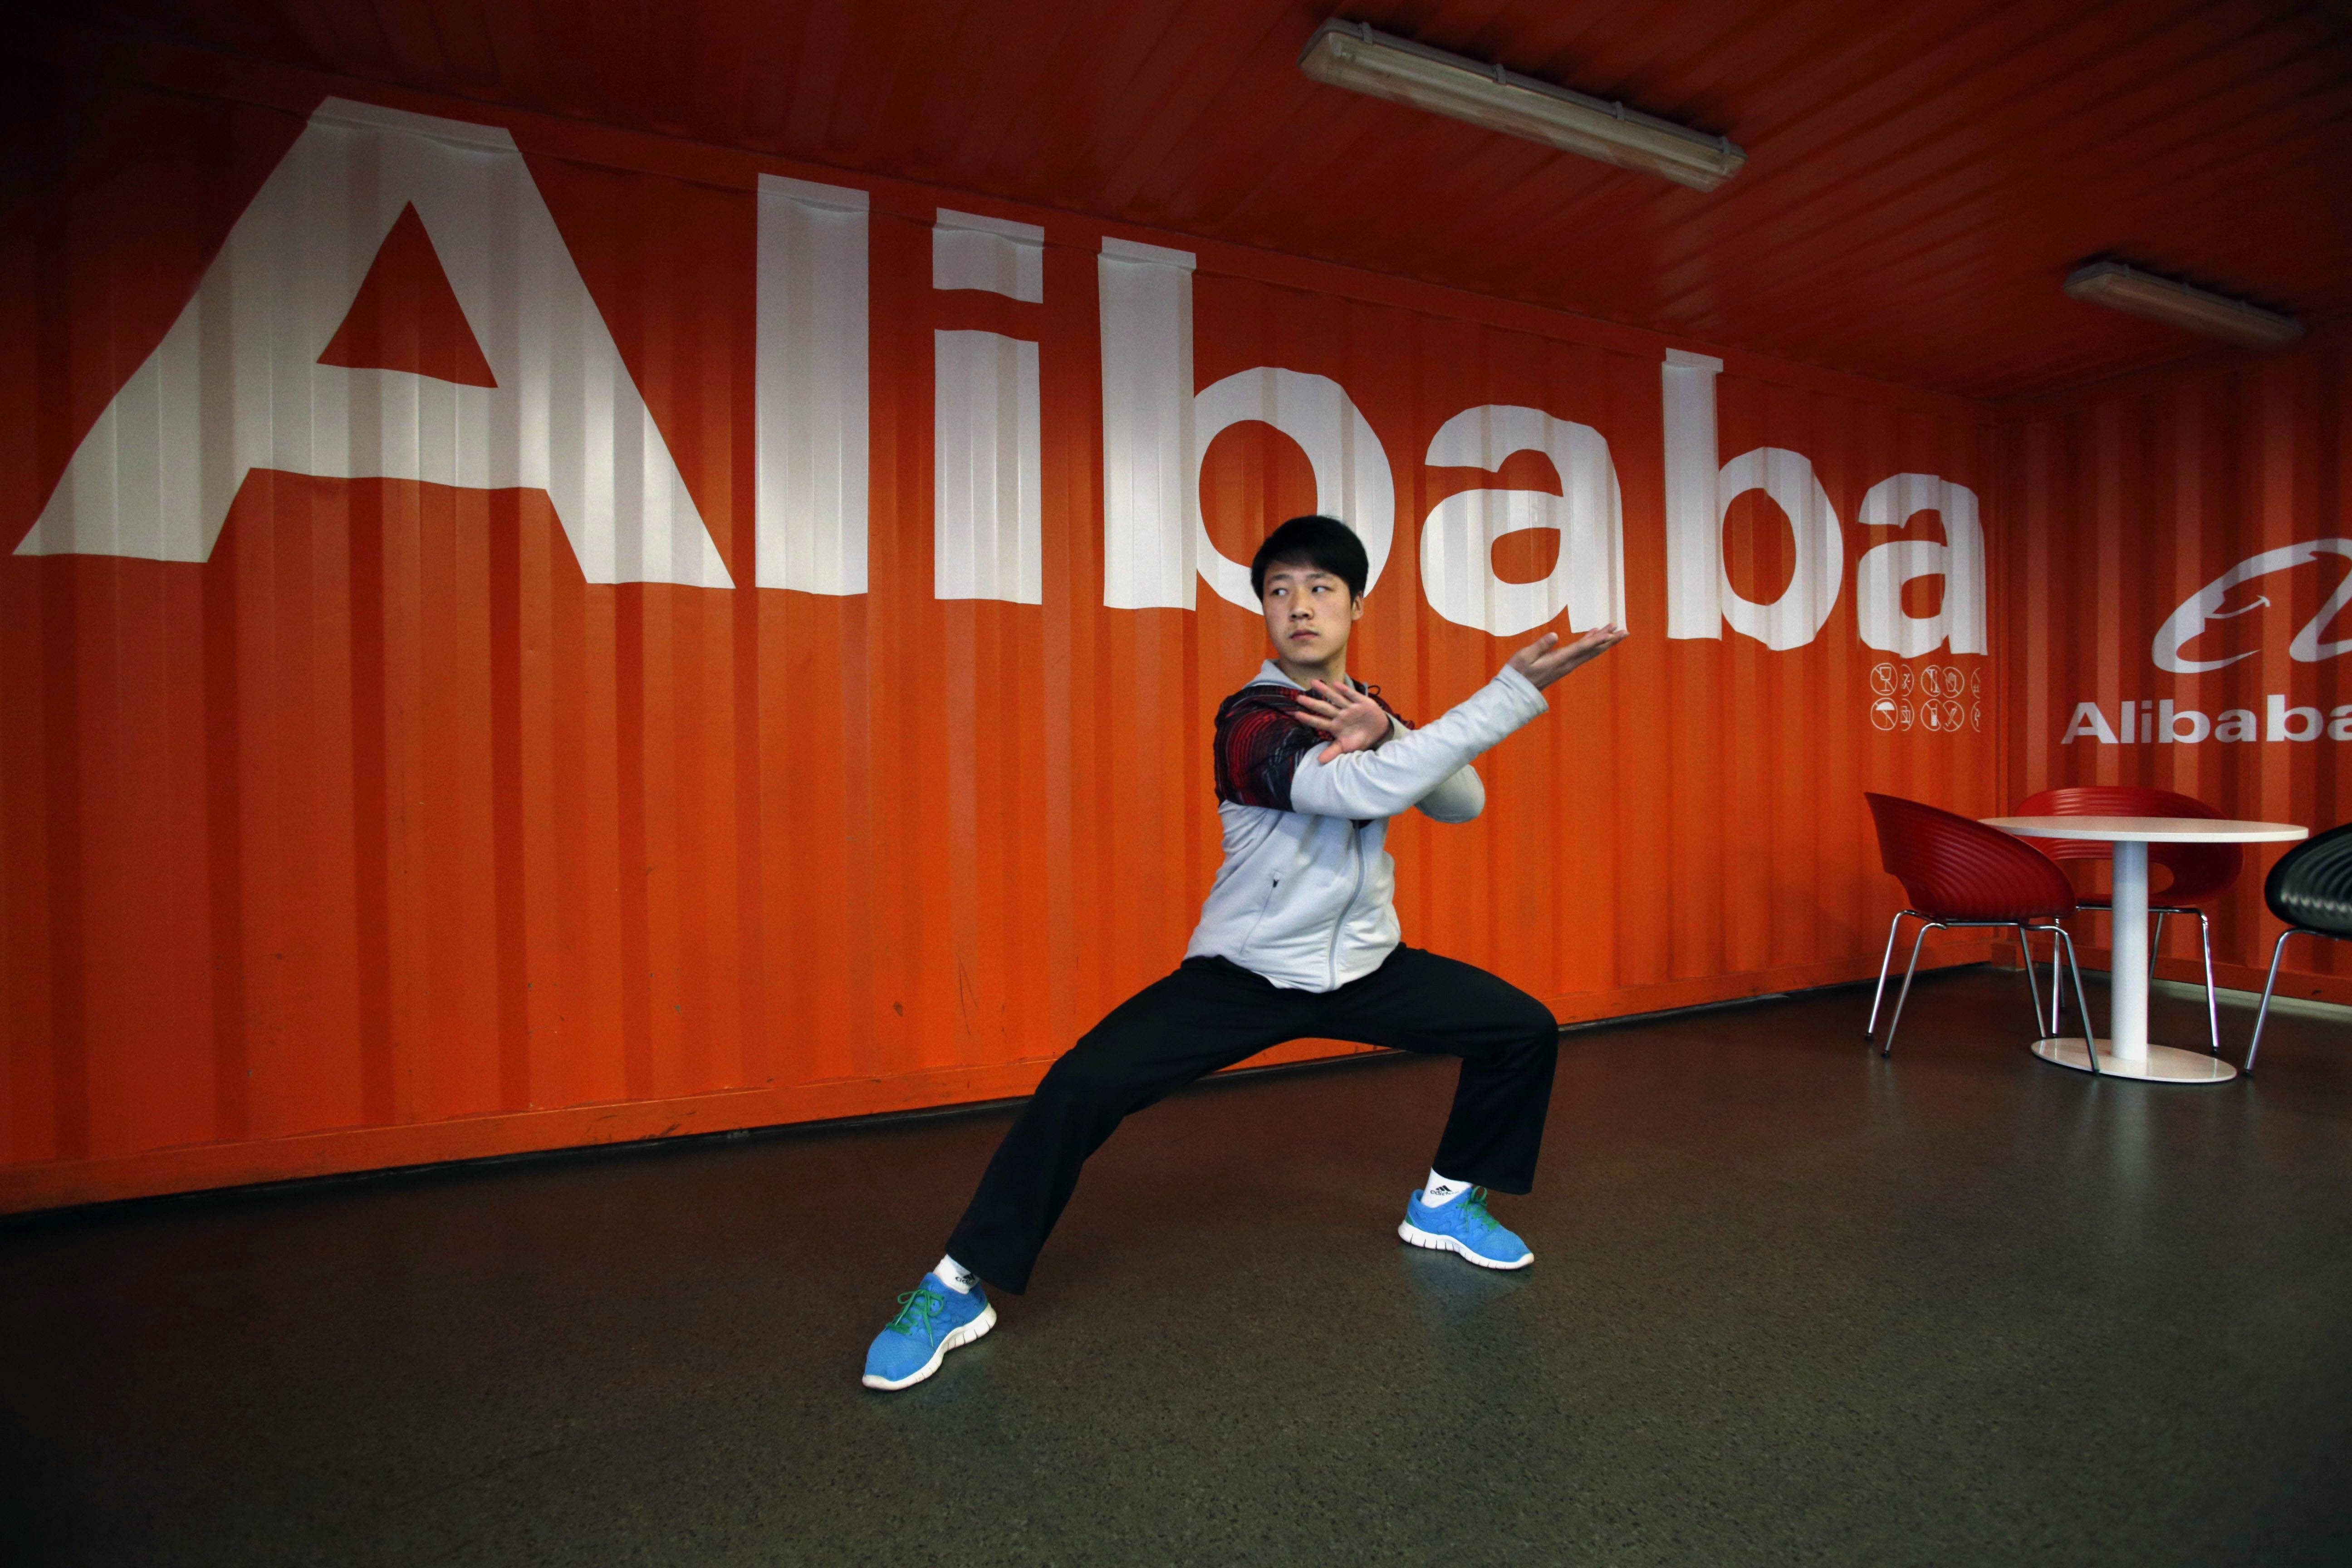 As Alibaba gets ready for its blockbuster U.S. stock sale in the next few months, technology companies are getting slammed in the market.